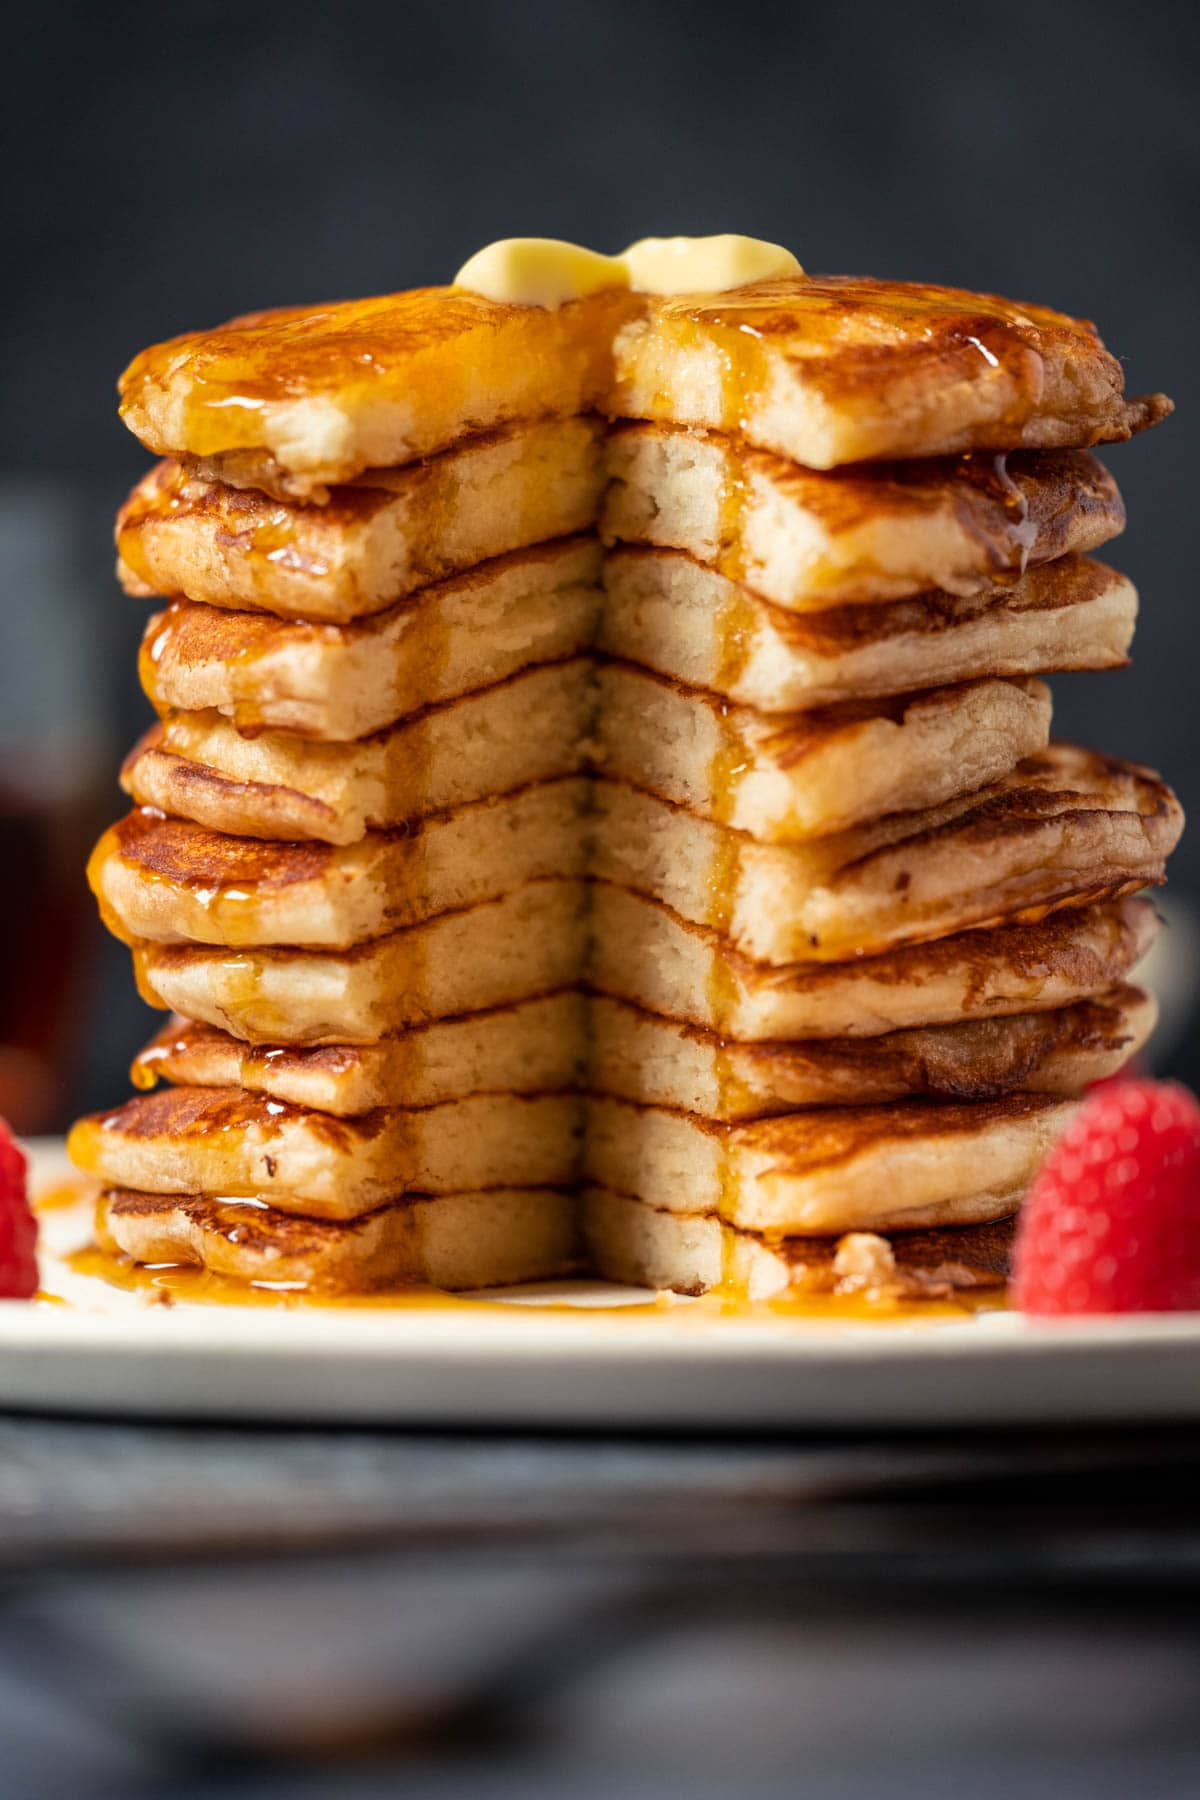 Stack of pancakes with a section cut out, on a white plate.